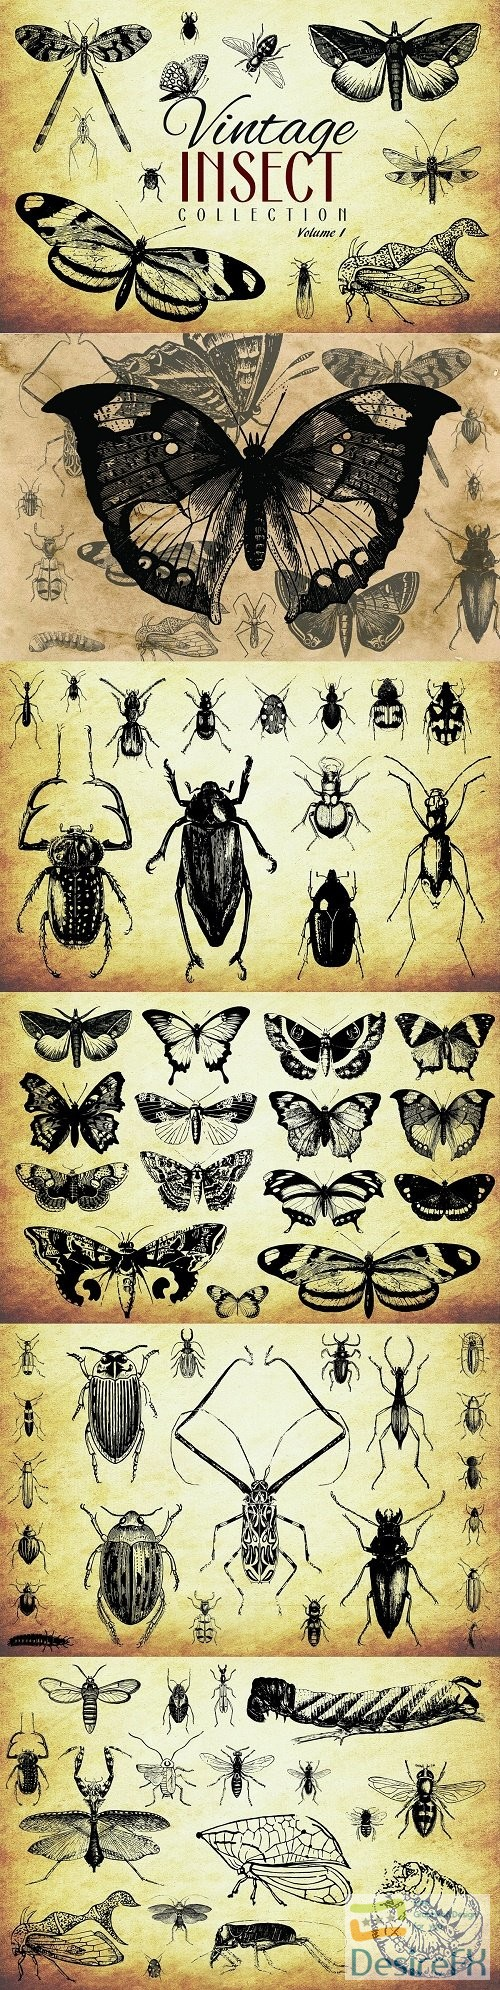 200 Vintage Insect Vector Graphics - 3450238